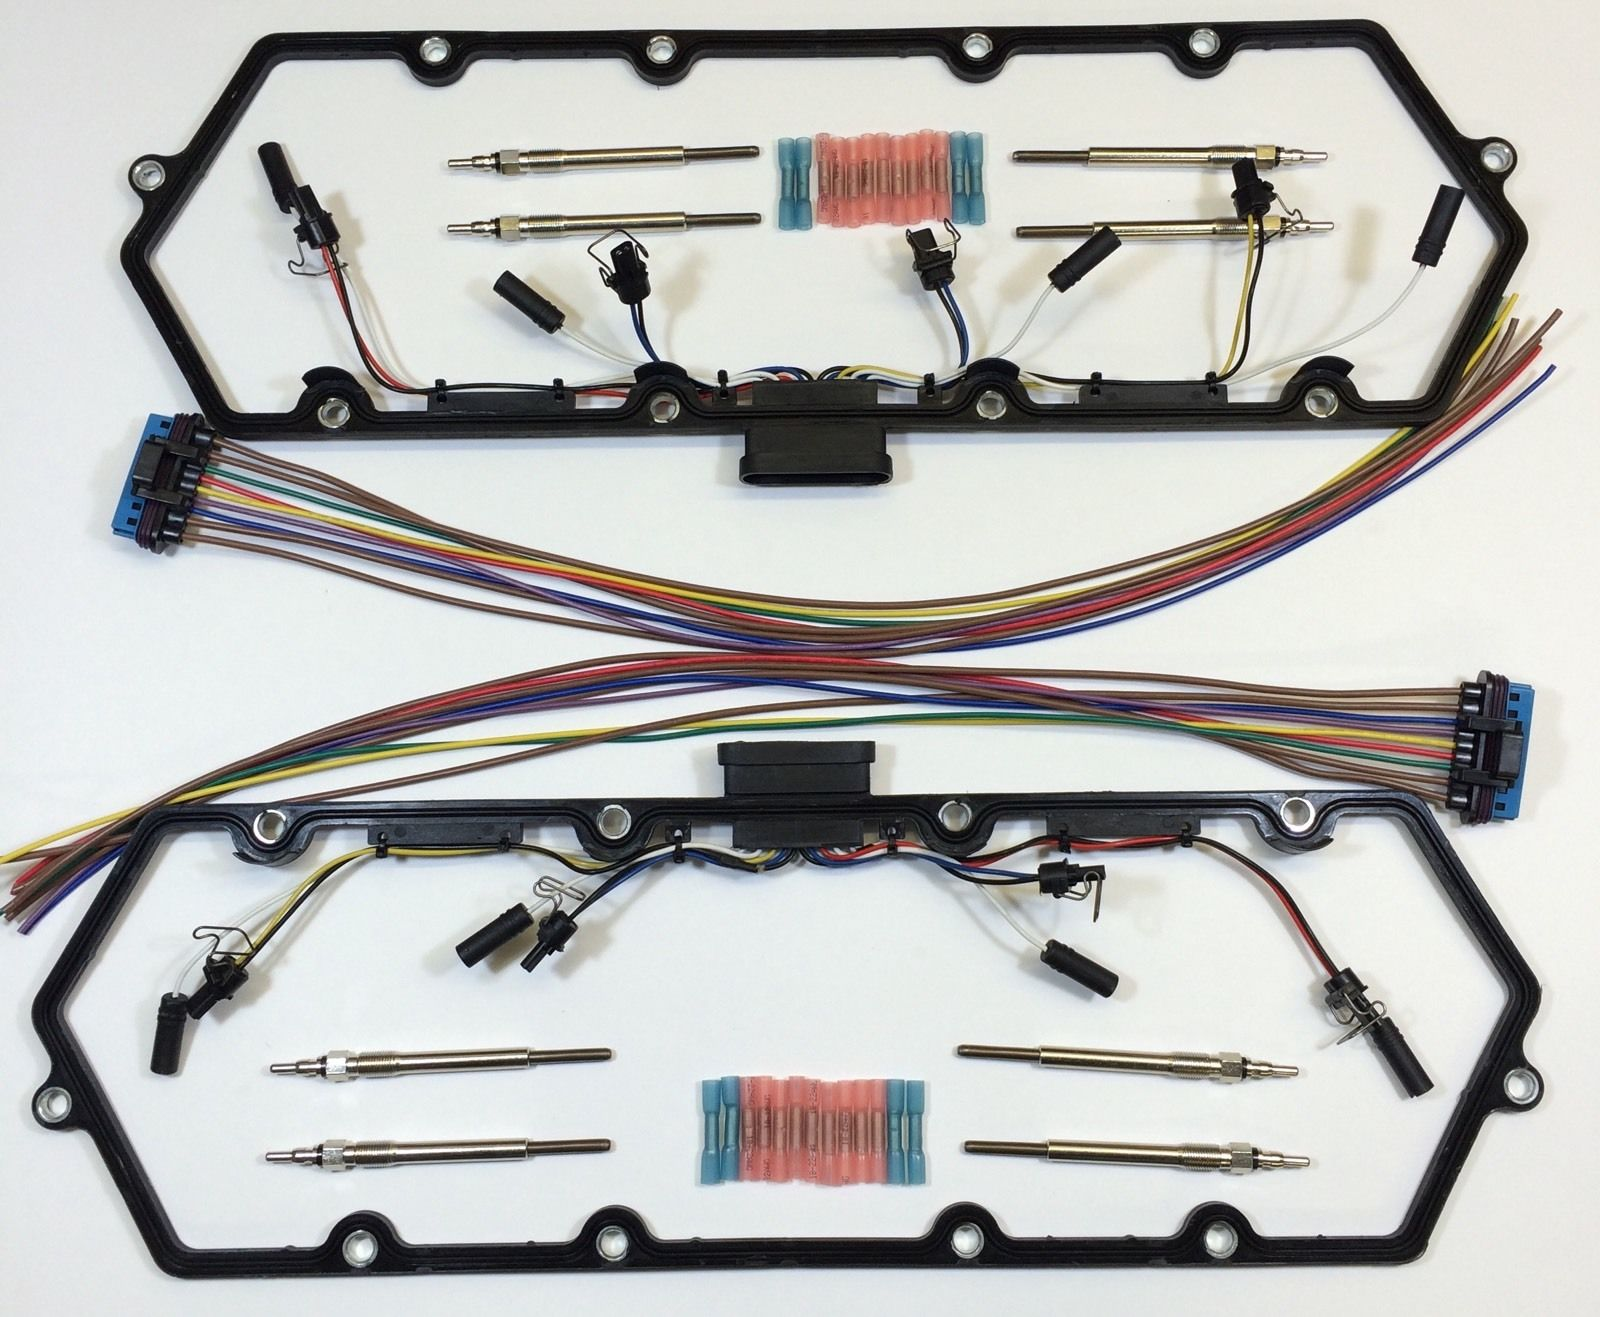 hight resolution of 7 3 powerstroke glow plug wiring diagram powerstroke glow plug wiring diagram ford 7 3 sel